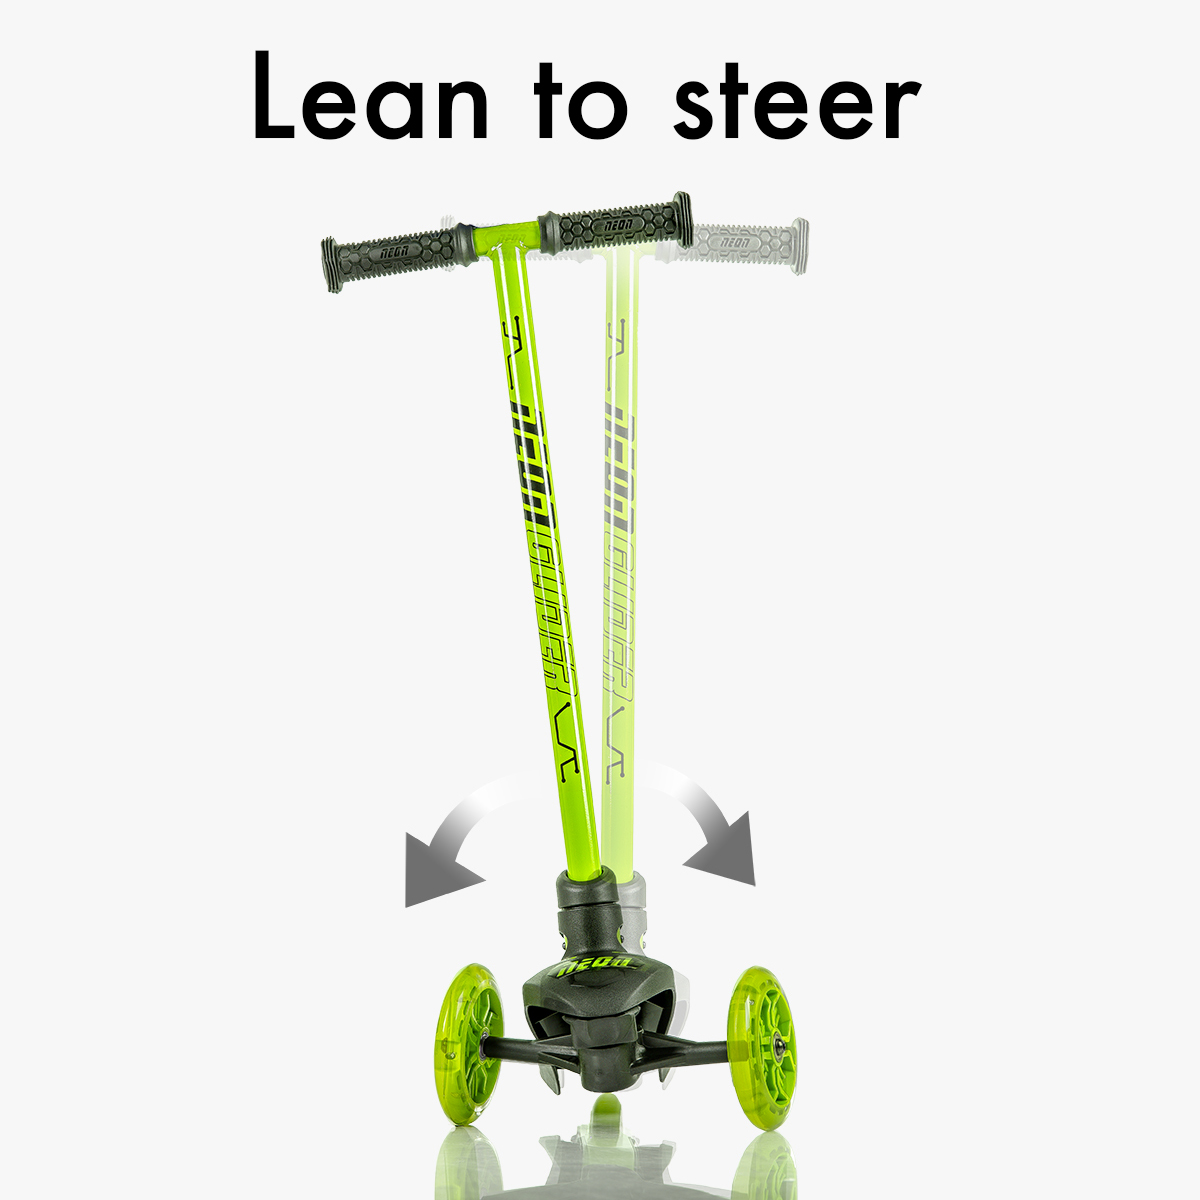 Patented lean to steer technology